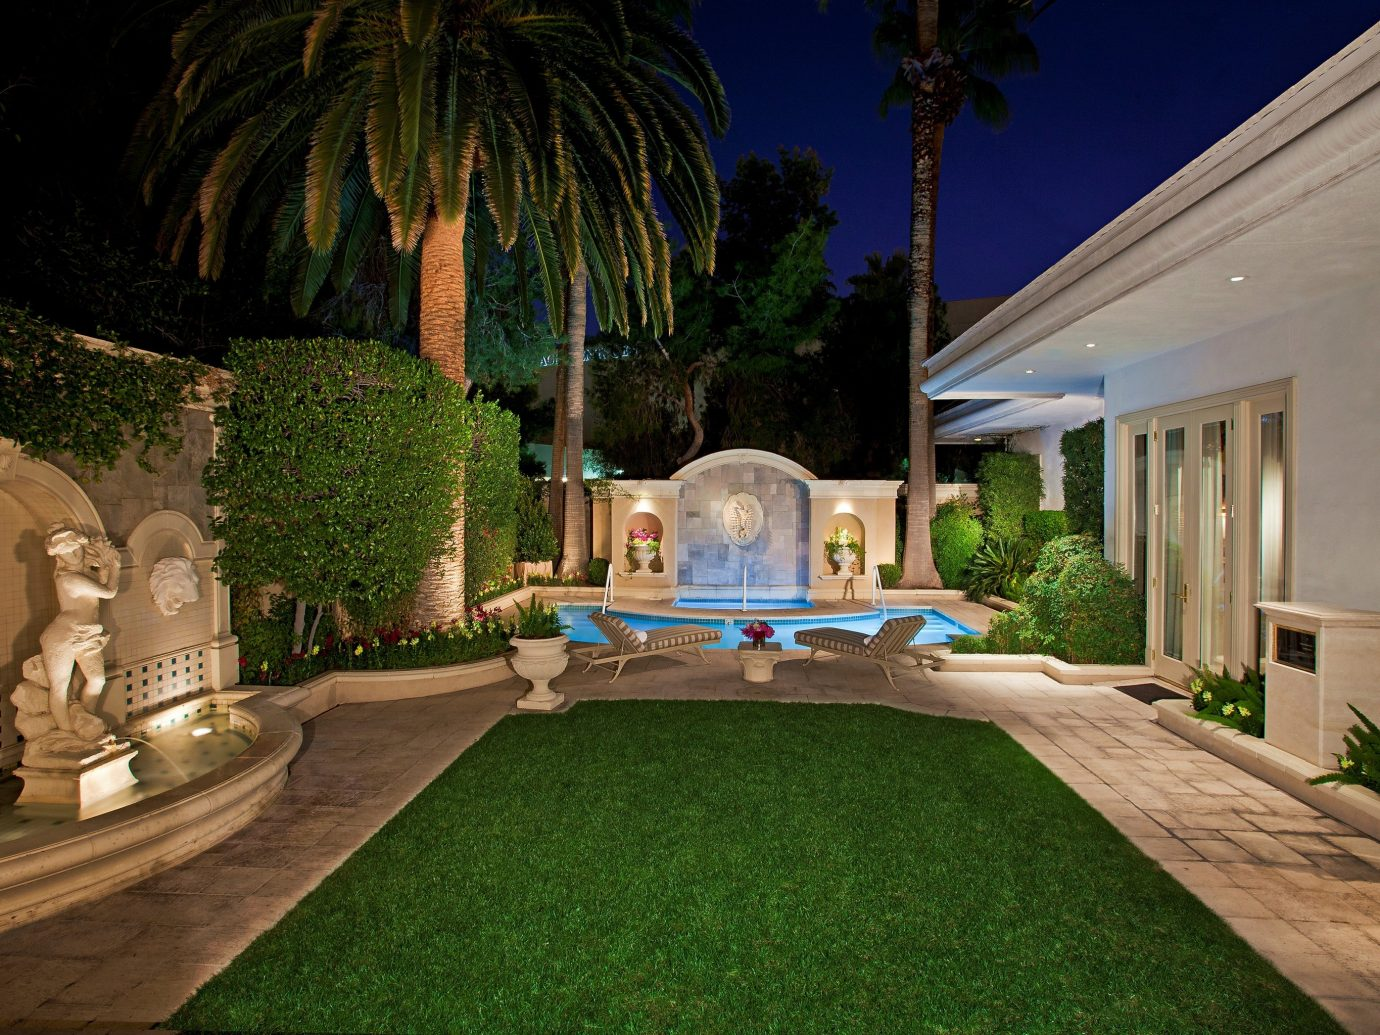 Lawn and private pool in a Three-Bedroom Villa at The Mirage Resort & Casino in Las Vegas